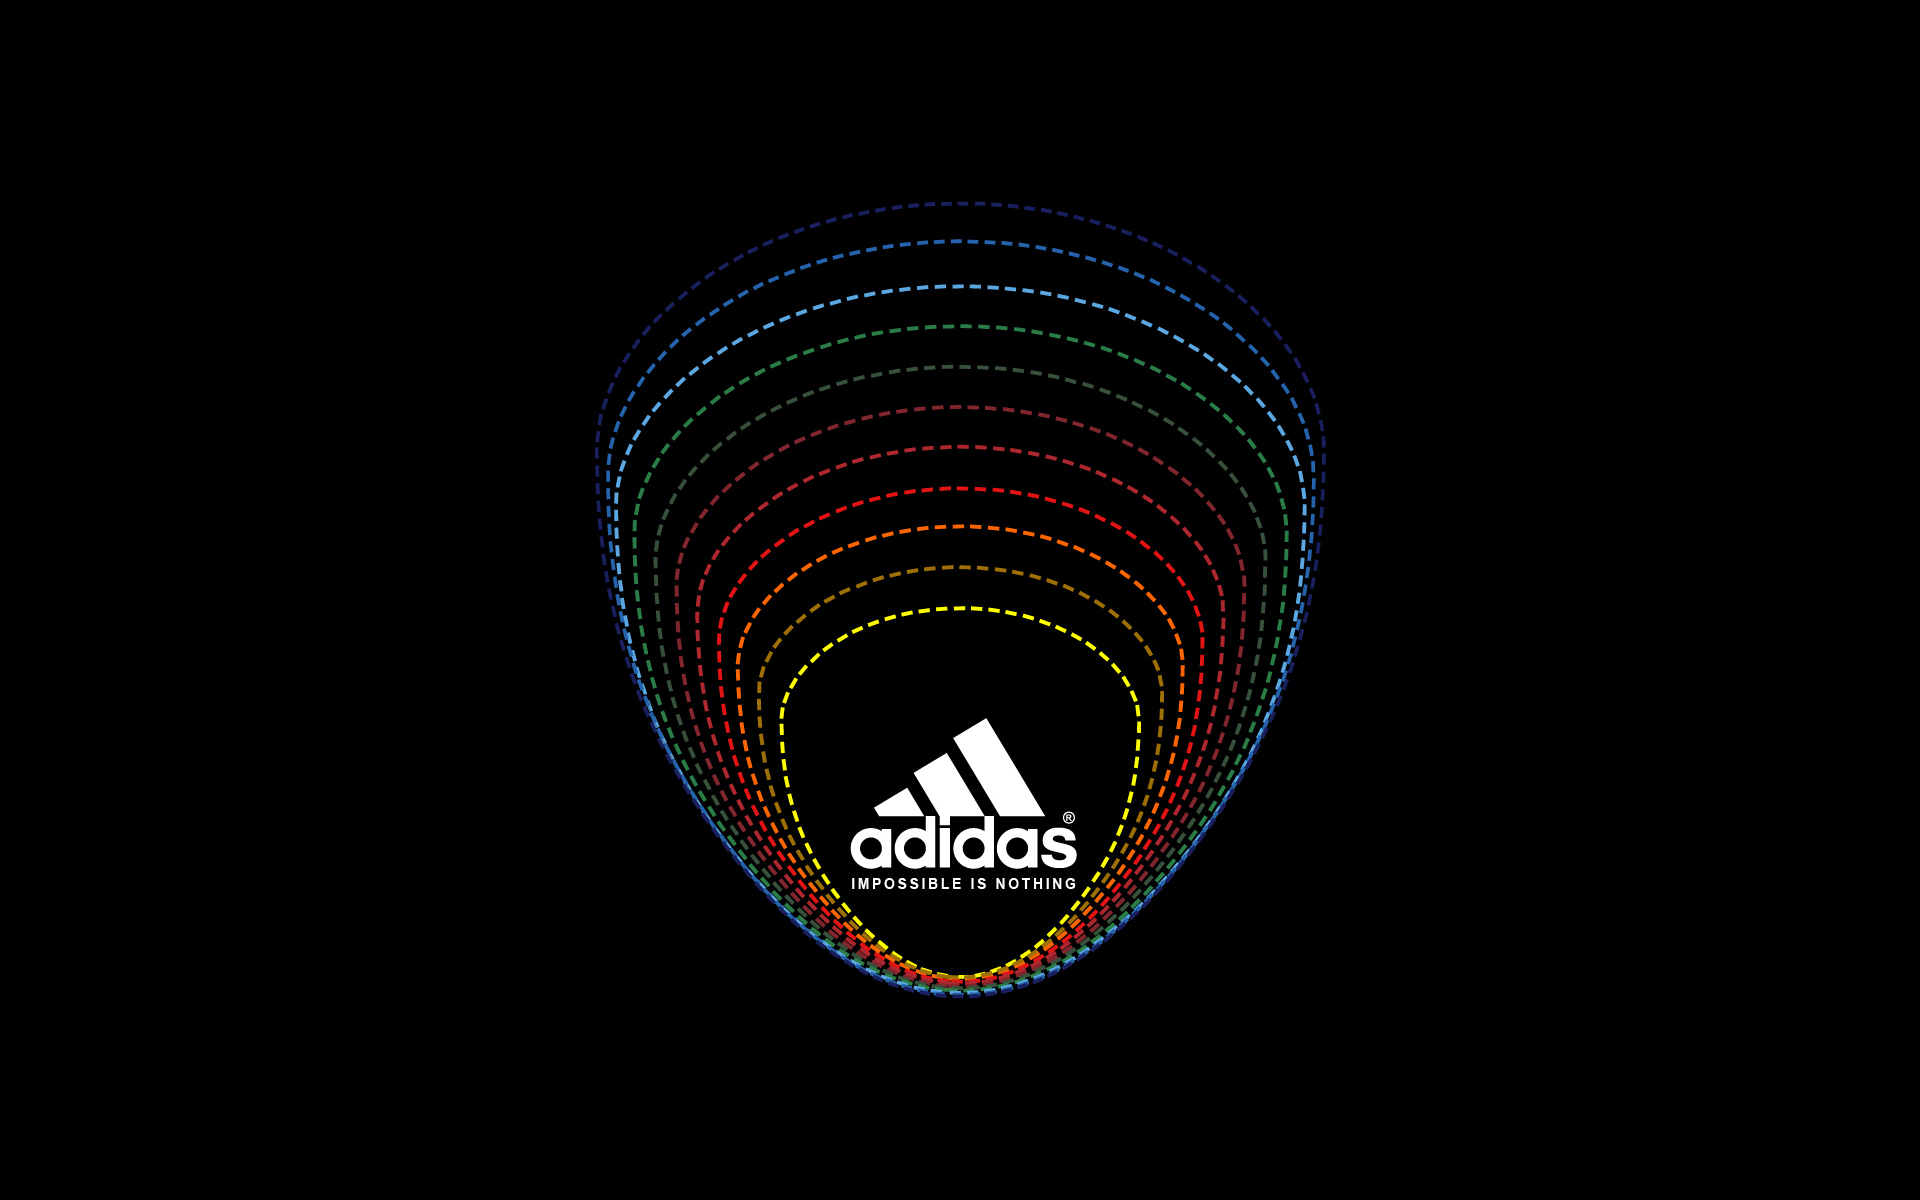 Adidas Impossible Is Nothing HD Wallpaper 1920x1200